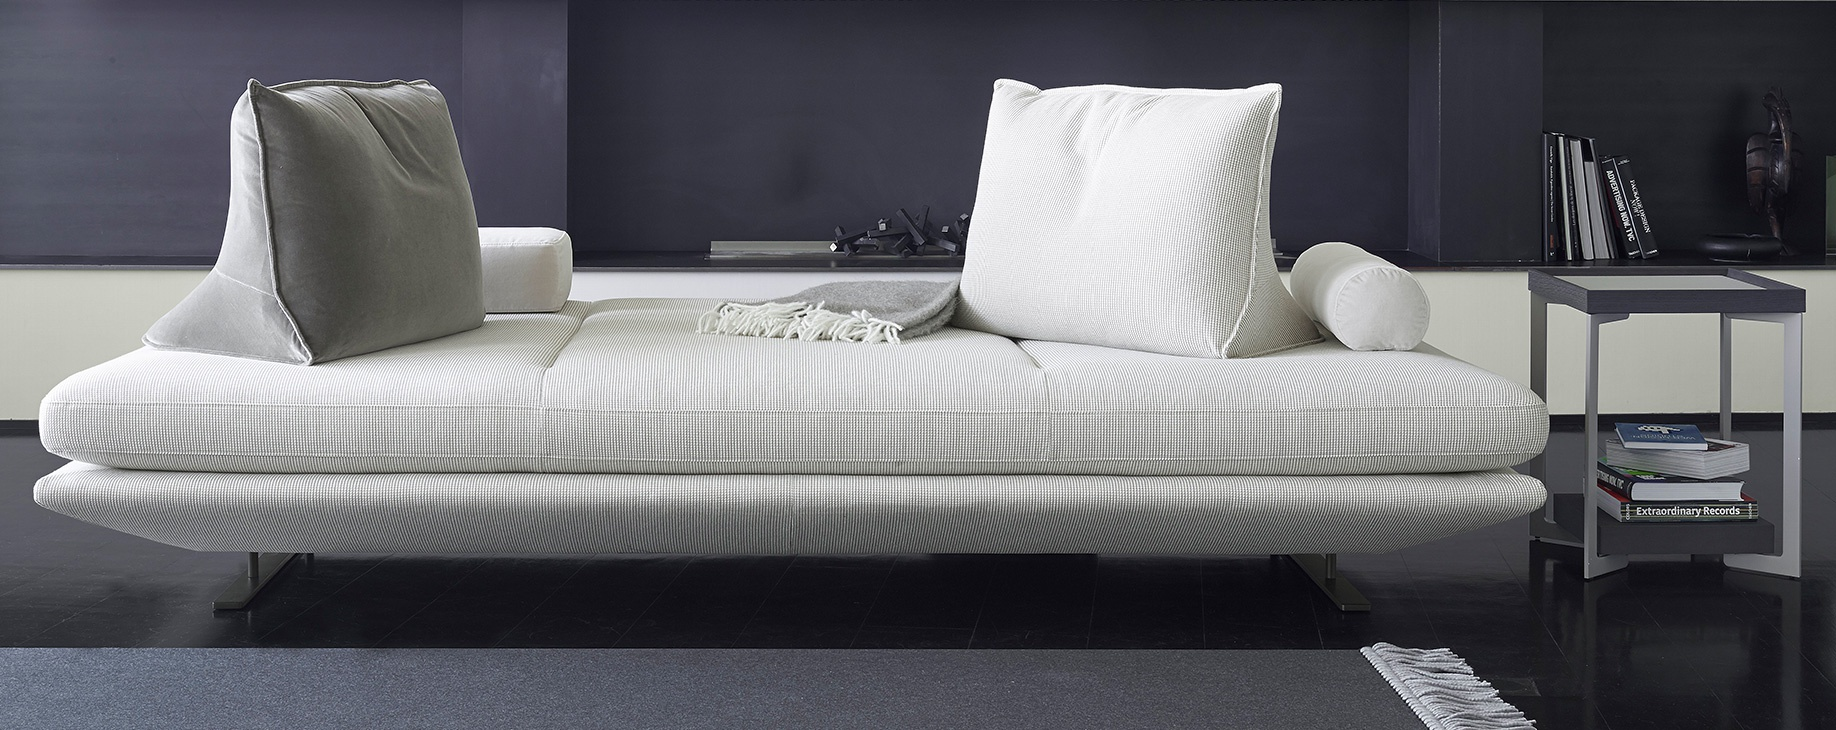 ligne roset sofa prado nice houzz. Black Bedroom Furniture Sets. Home Design Ideas